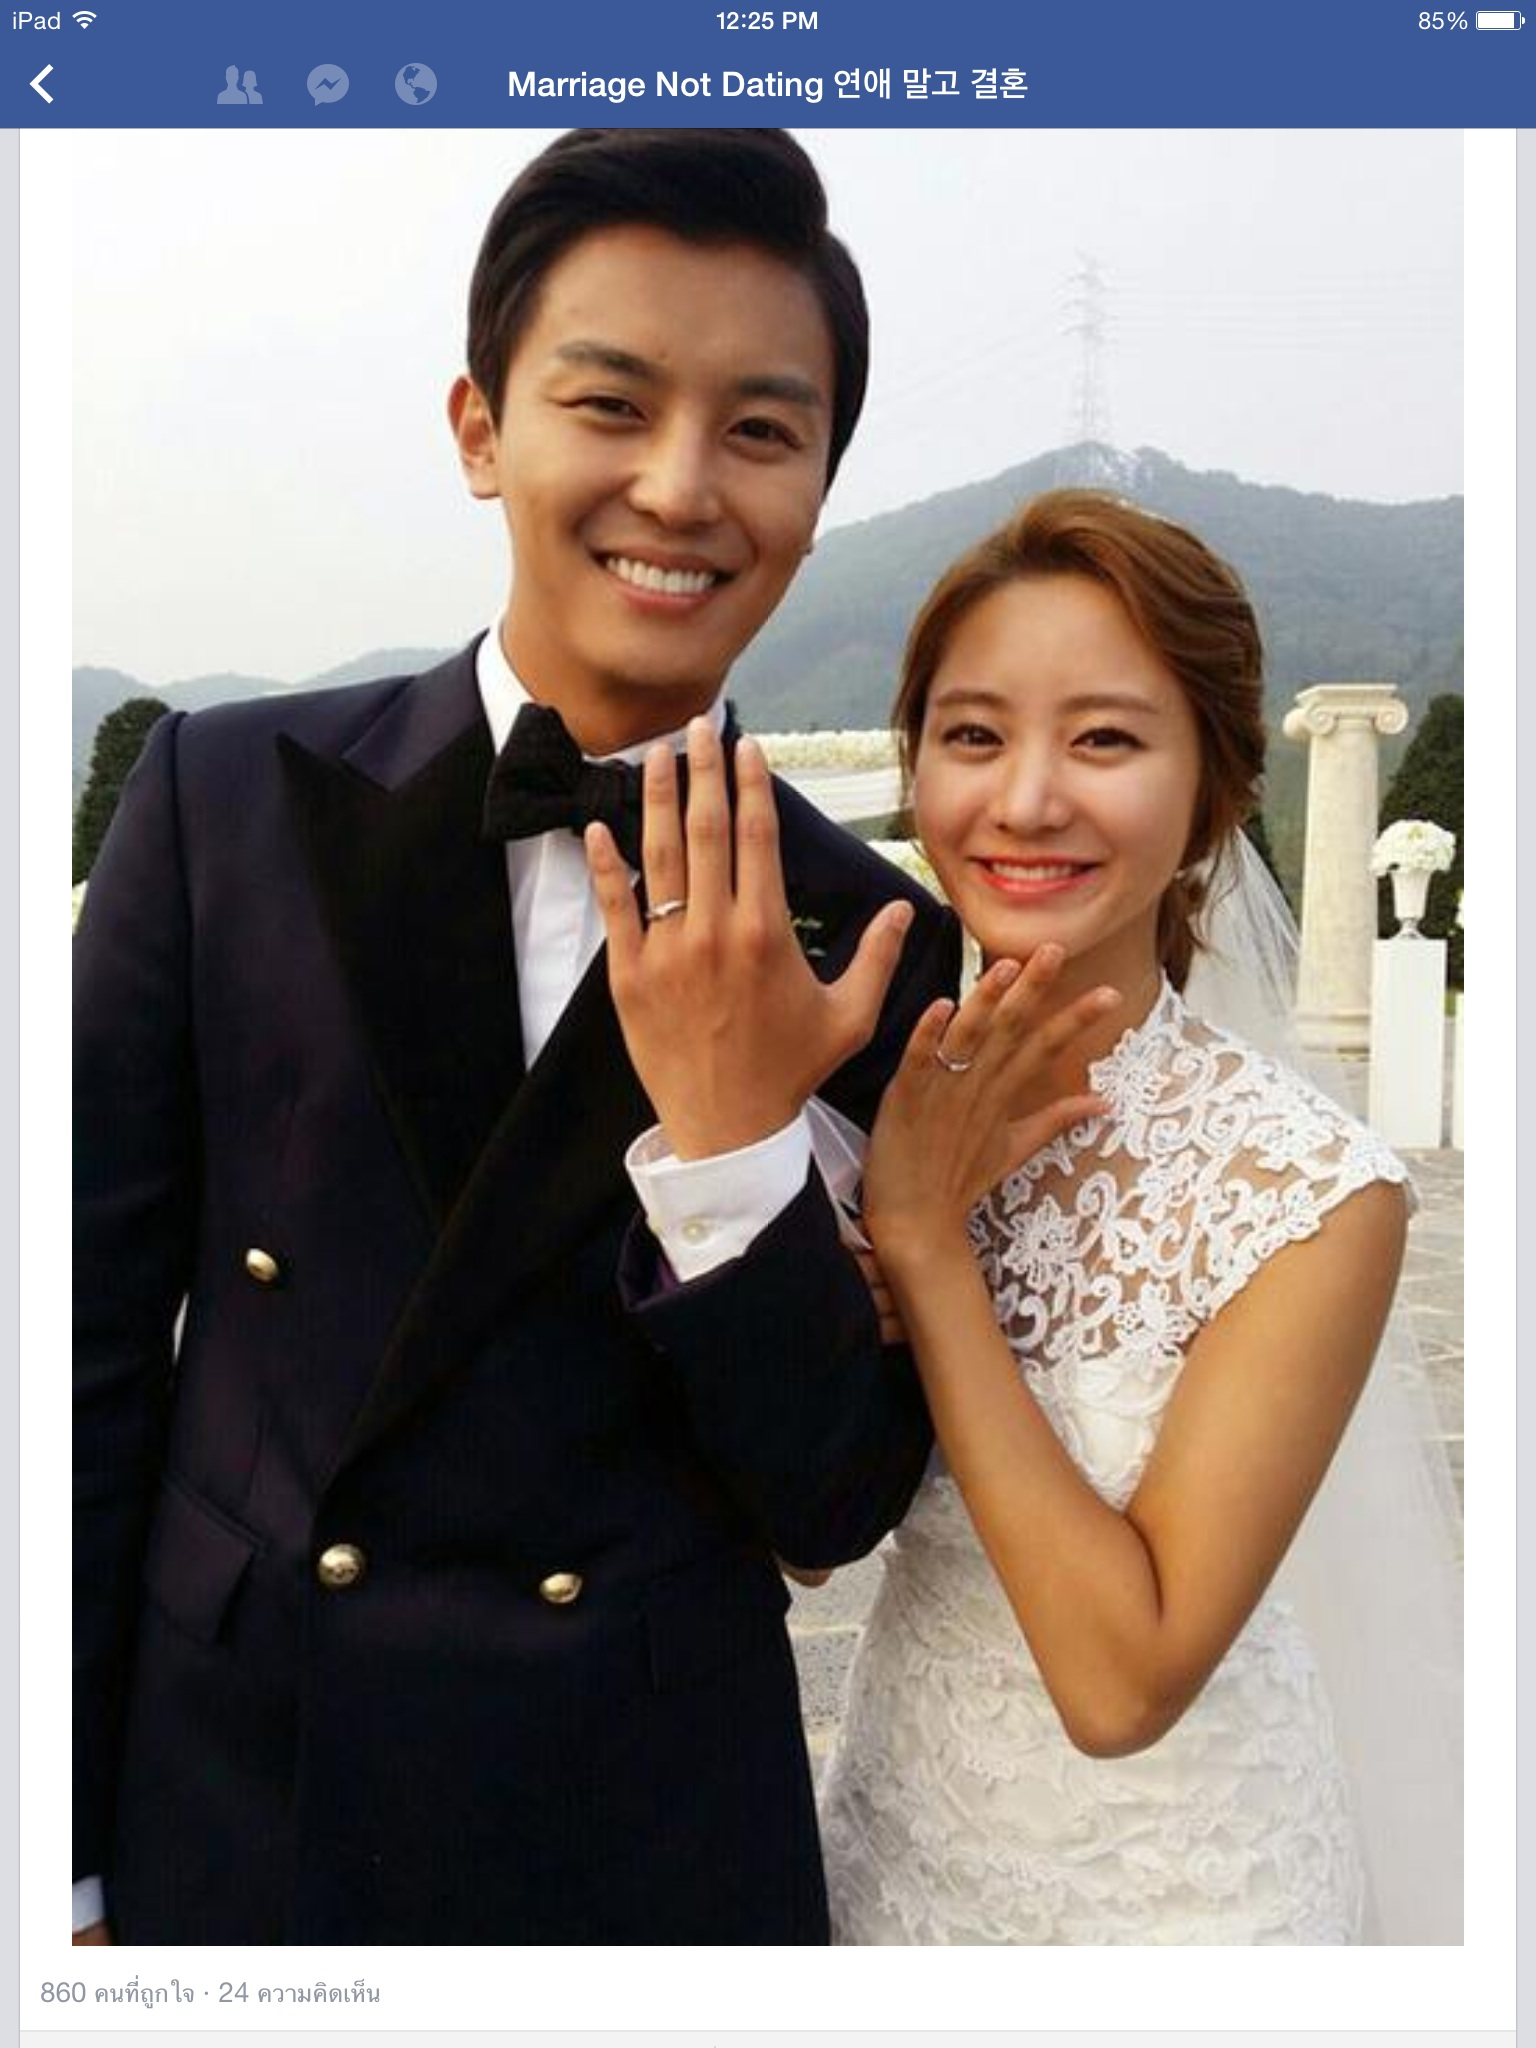 Marriage Not Dating Eng Sub Dailymotion